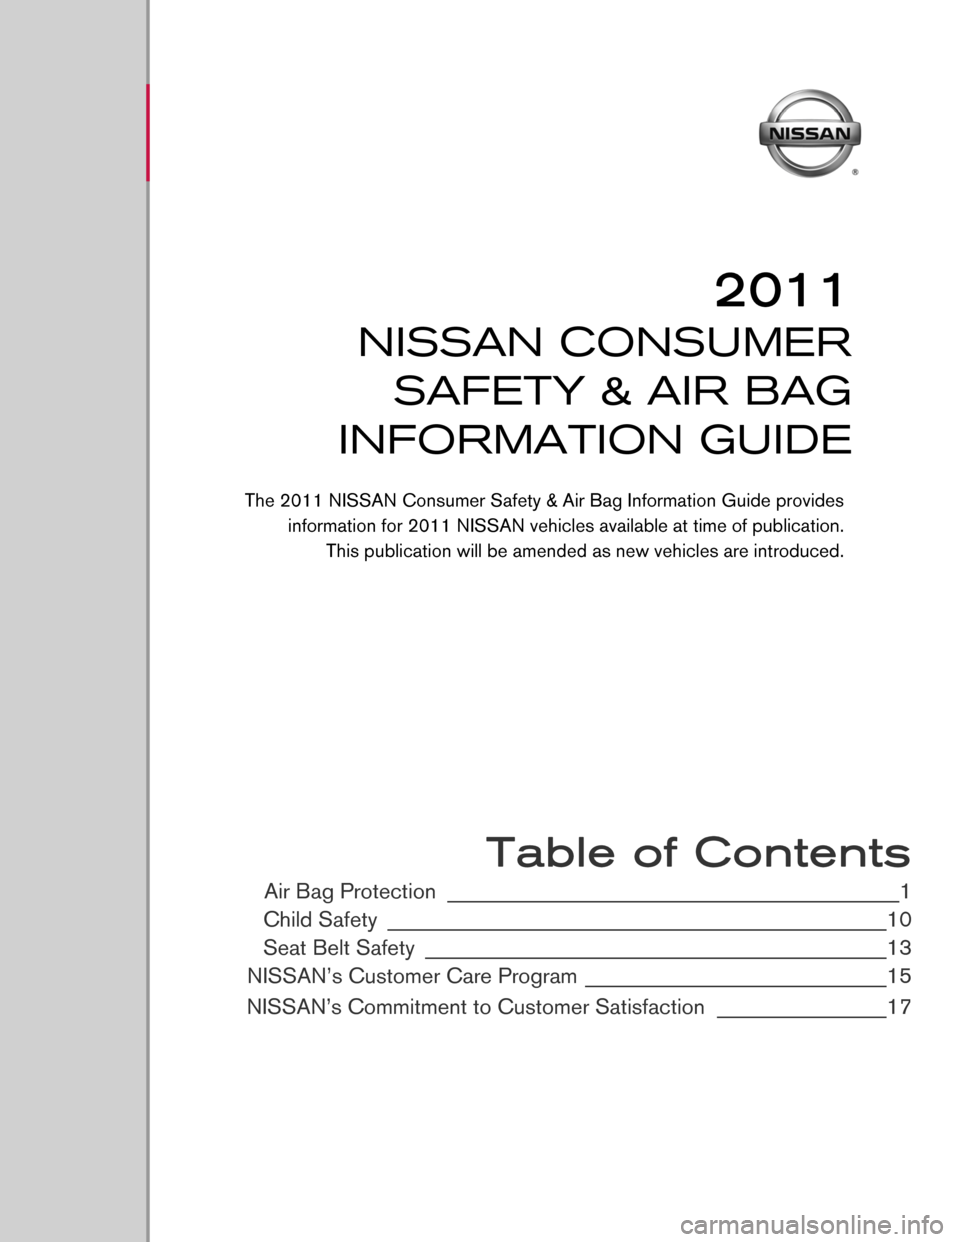 NISSAN ROGUE 2011 1.G Consumer Safety Air Bag Information Guide                                                Table of Contents Air Bag Protection ________________________________________________1 Child Safety  ____________________________________________________